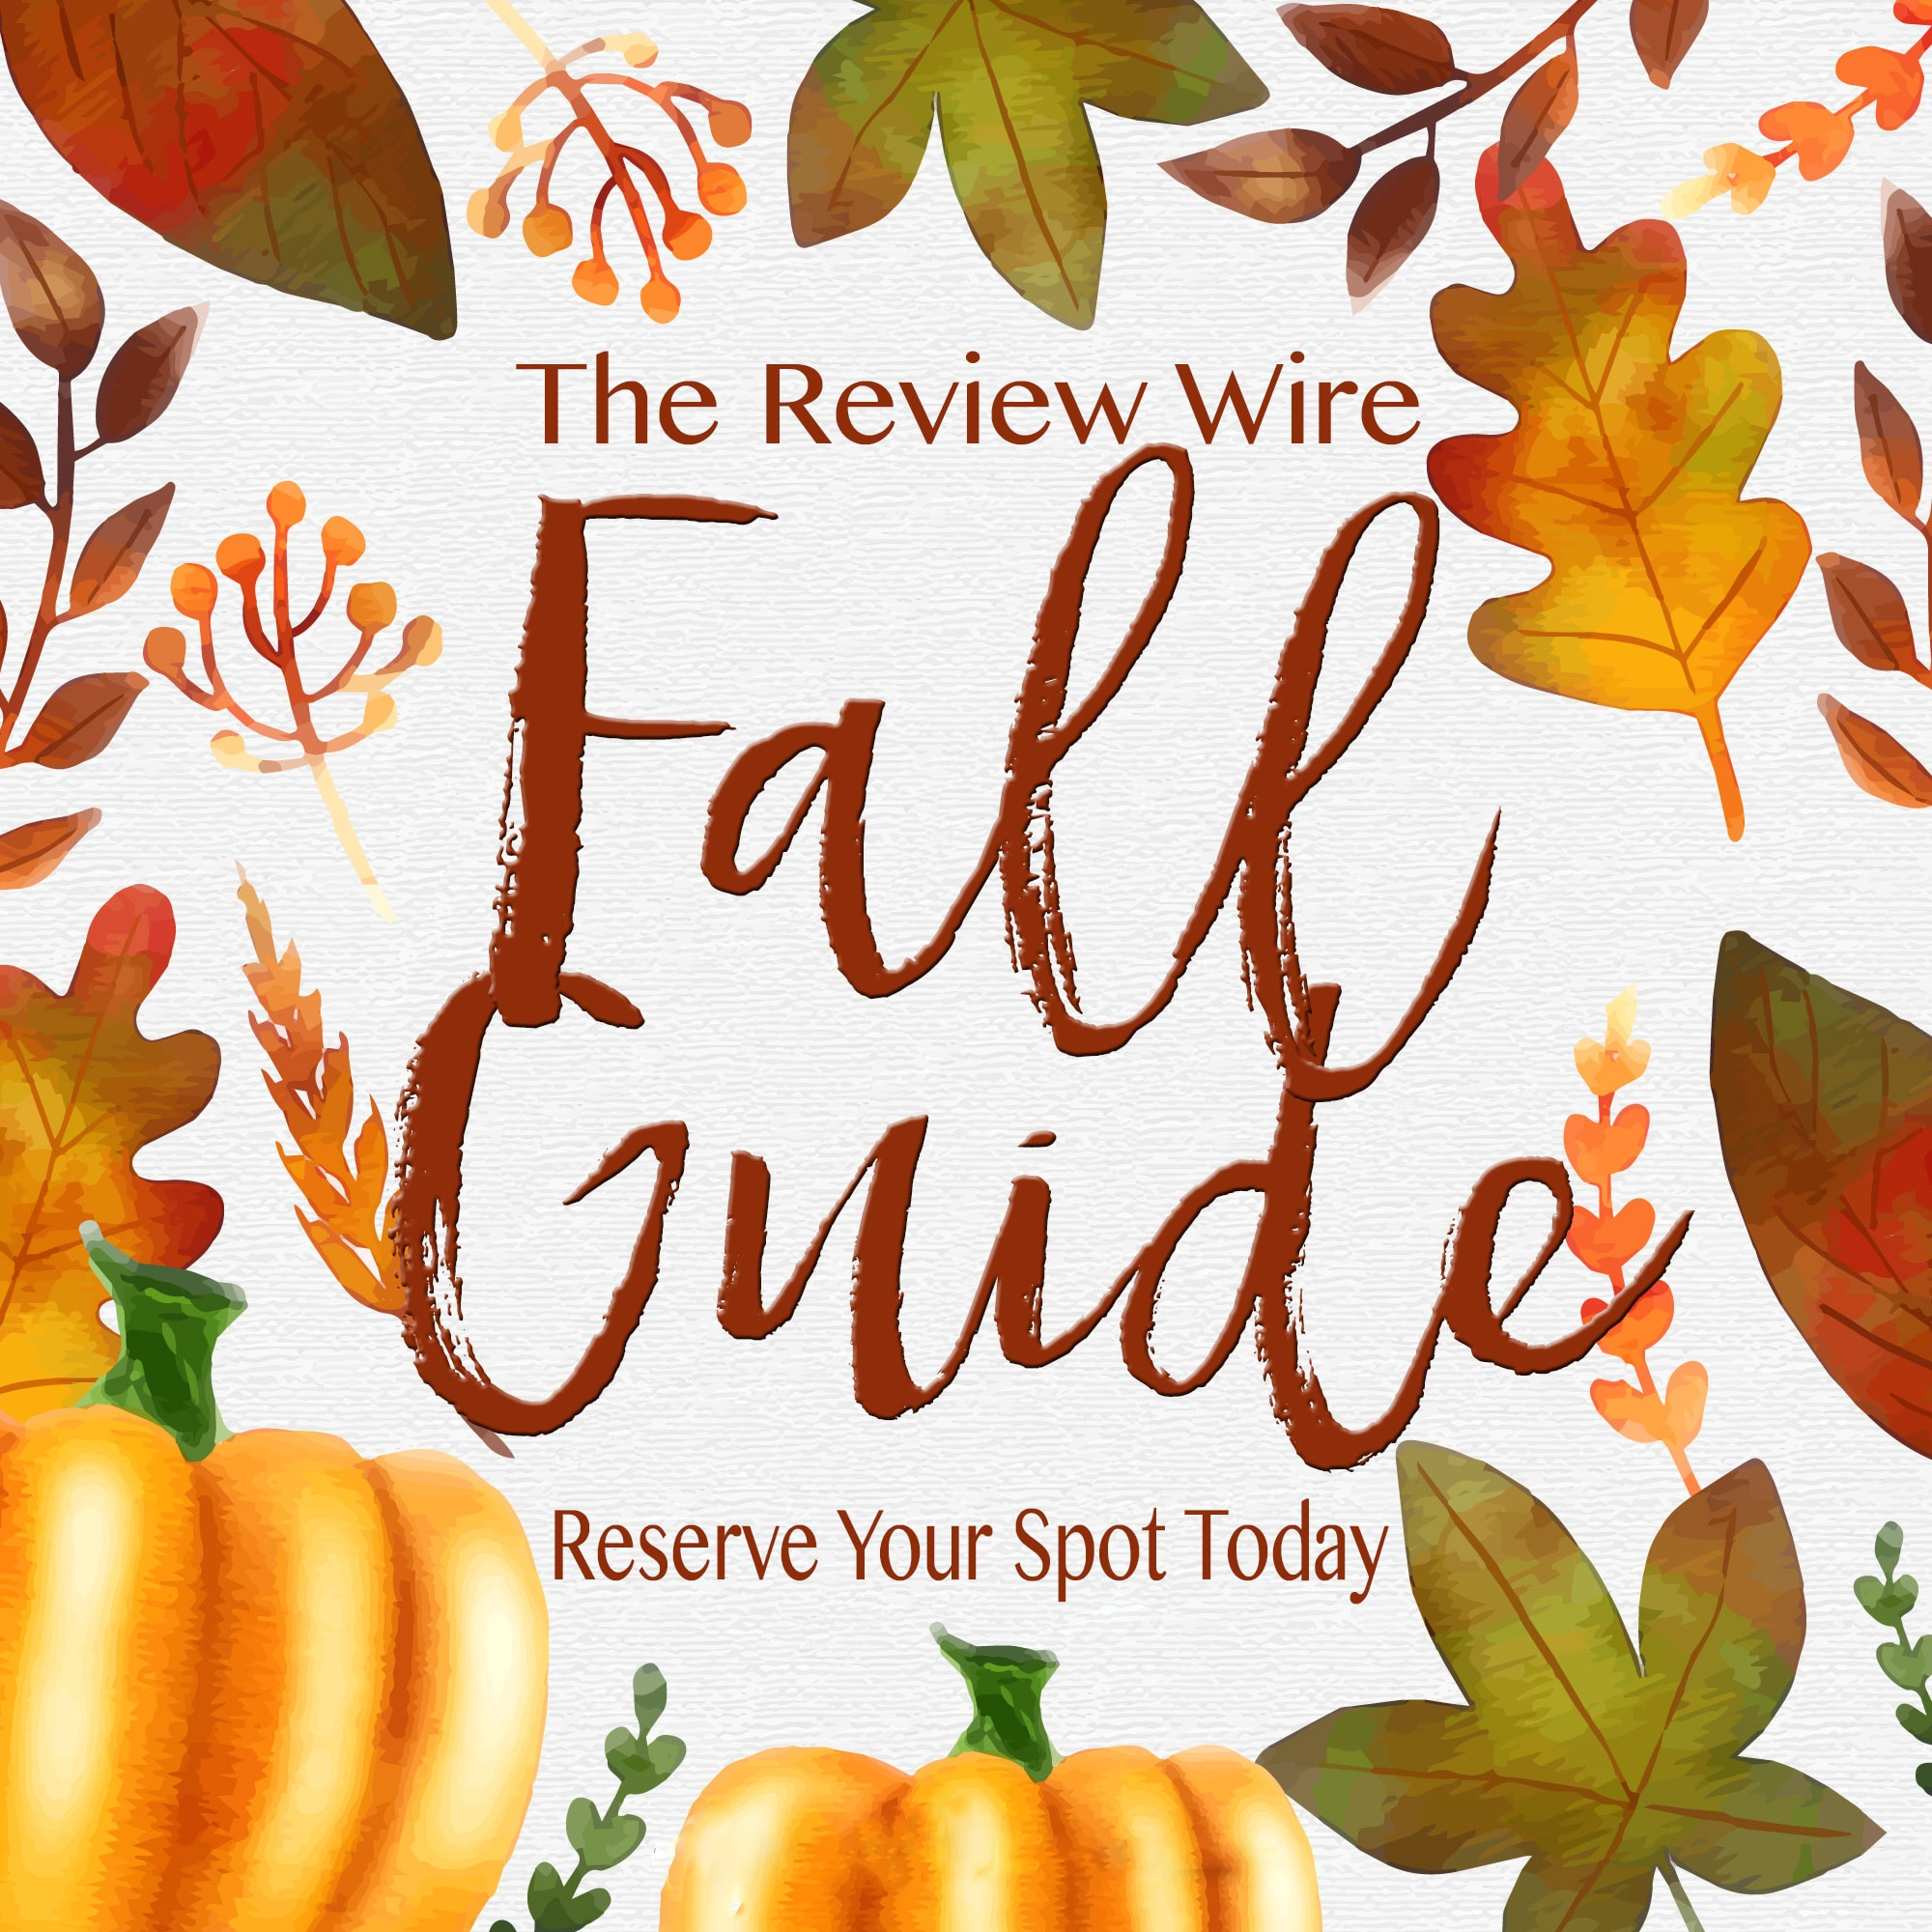 The Review Wire Fall Guide_ Reserve Your Spot